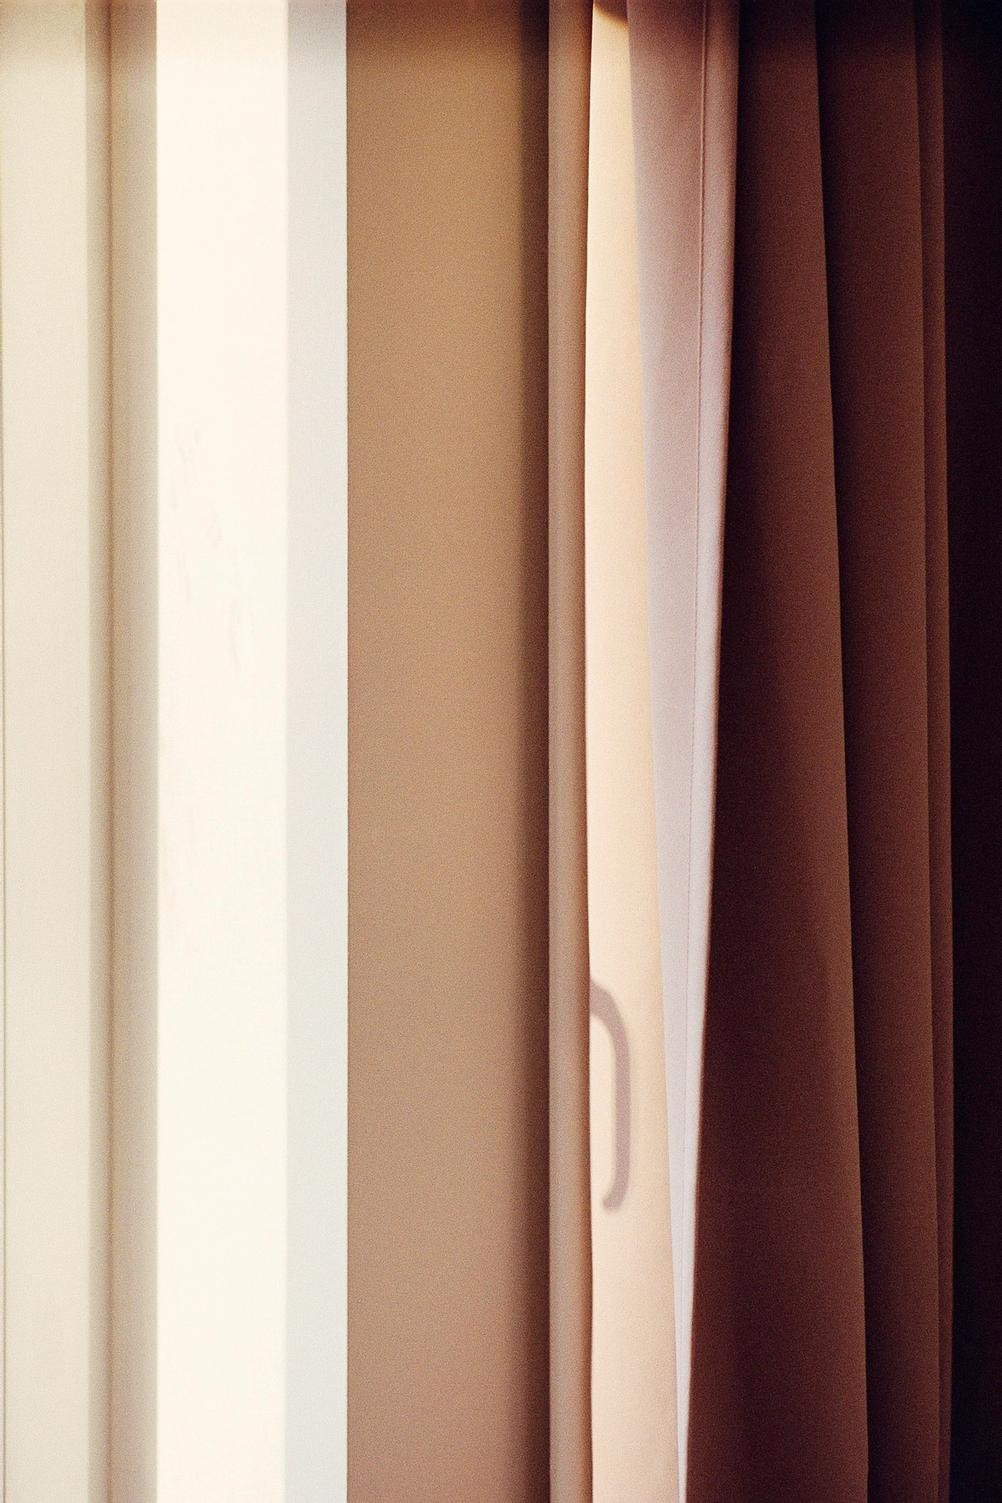 Abstract photo of window and curtains.